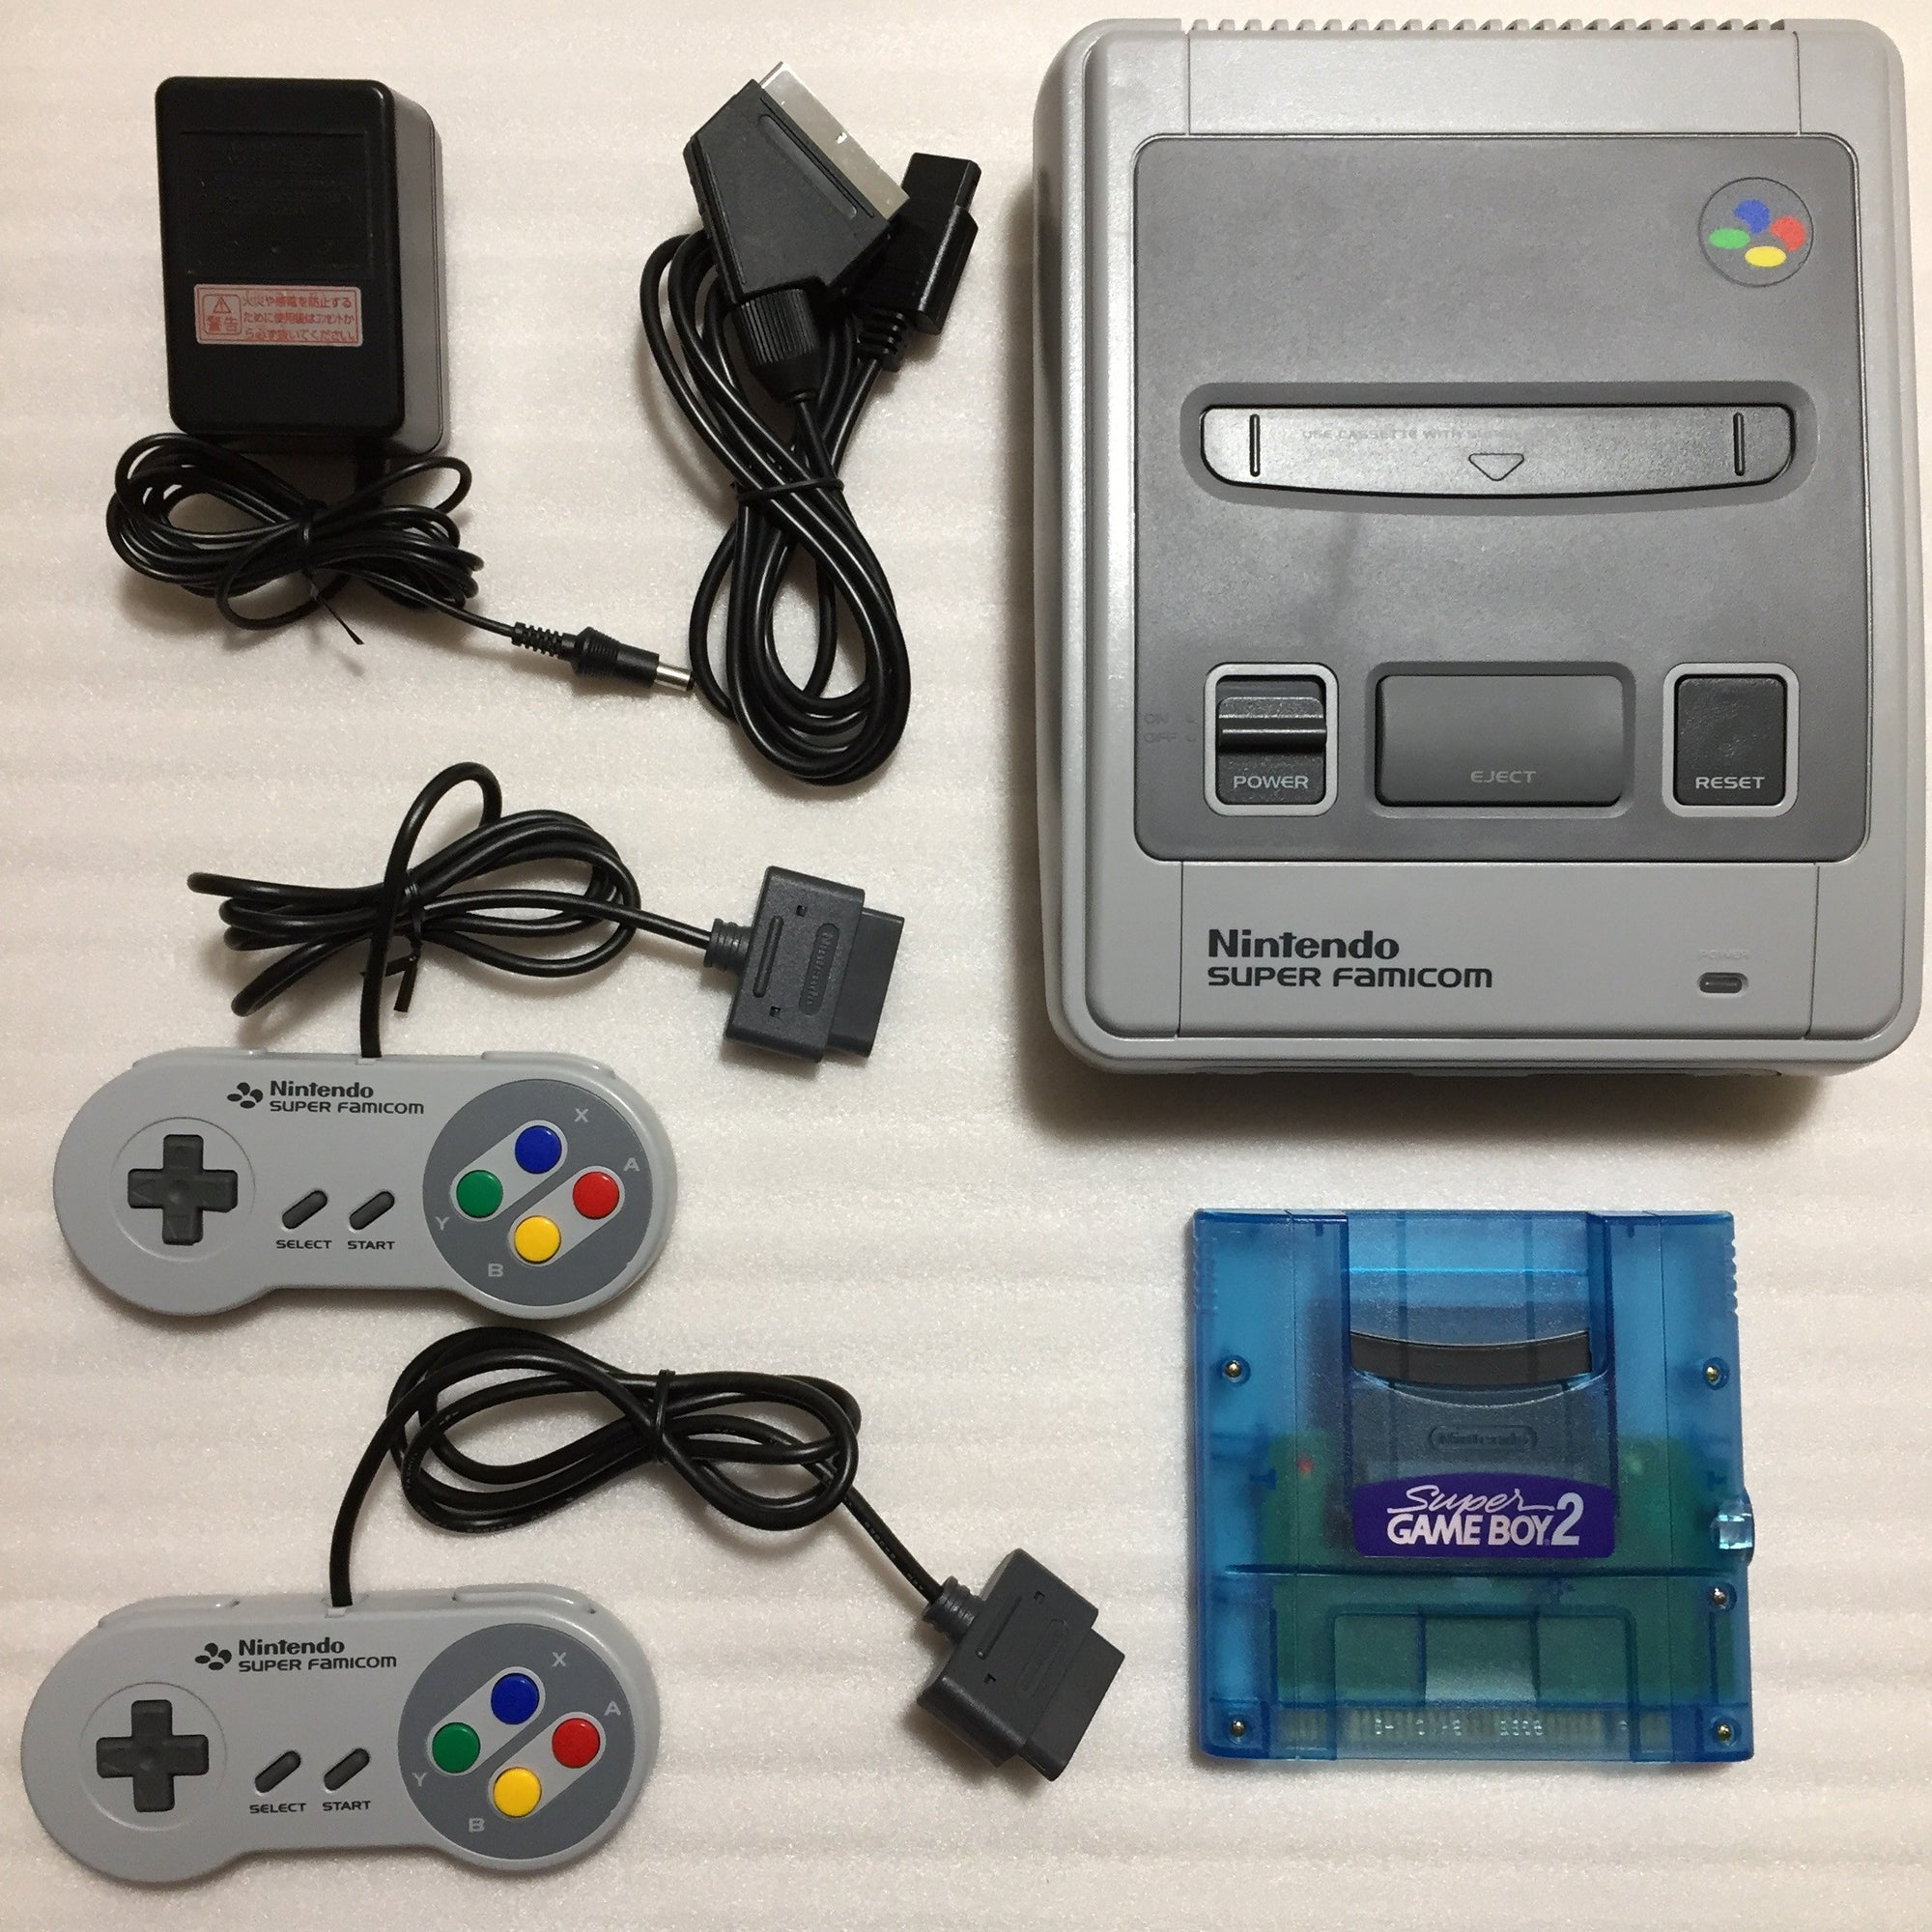 1-CHIP Super Famicom system - Super Game Boy 2 set